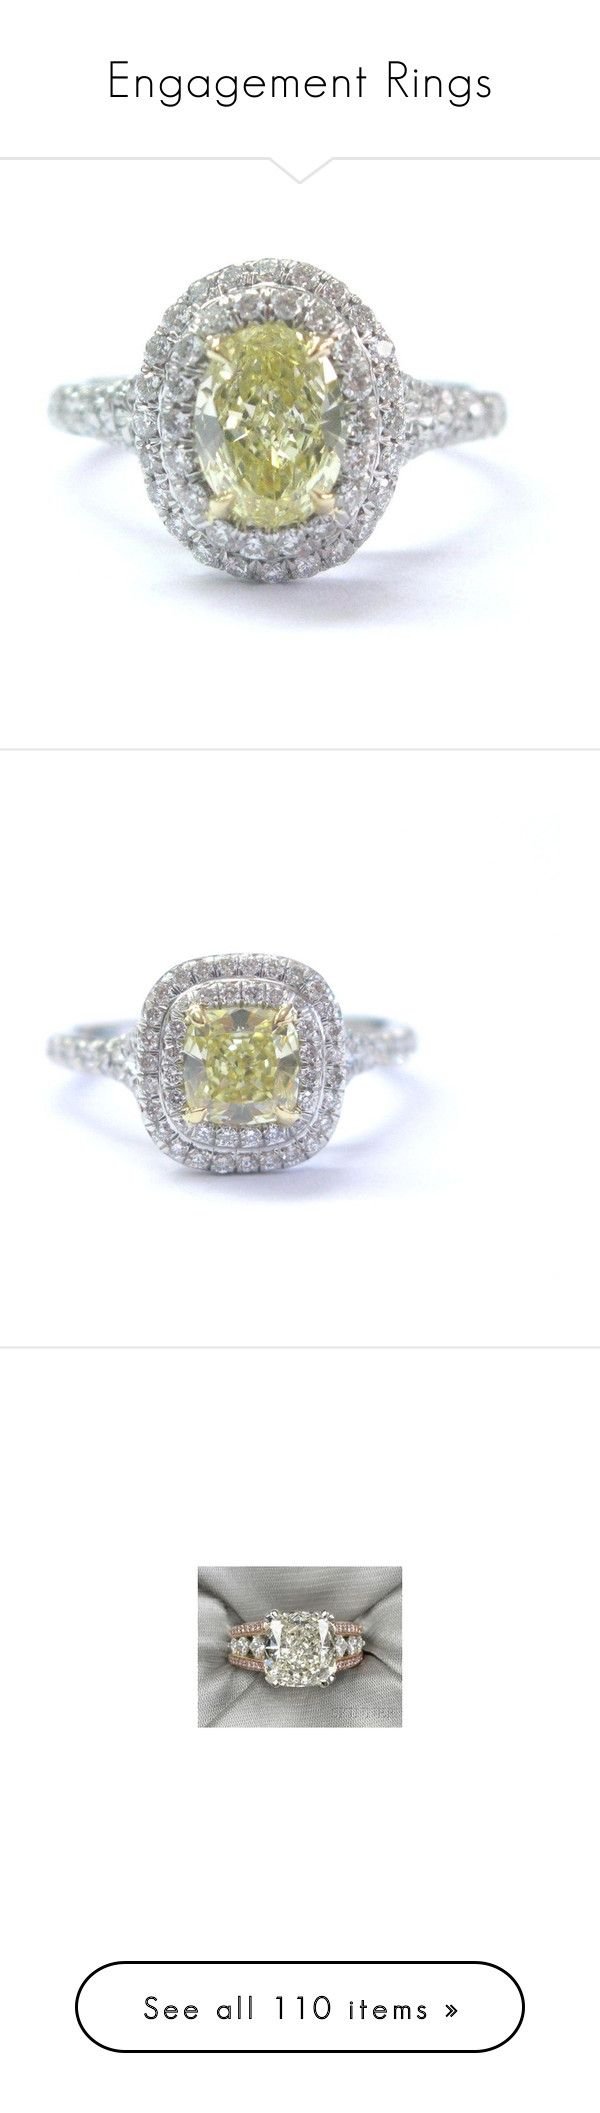 """engagement rings""""nikki-usmc92 ❤ liked on polyvore featuring"""